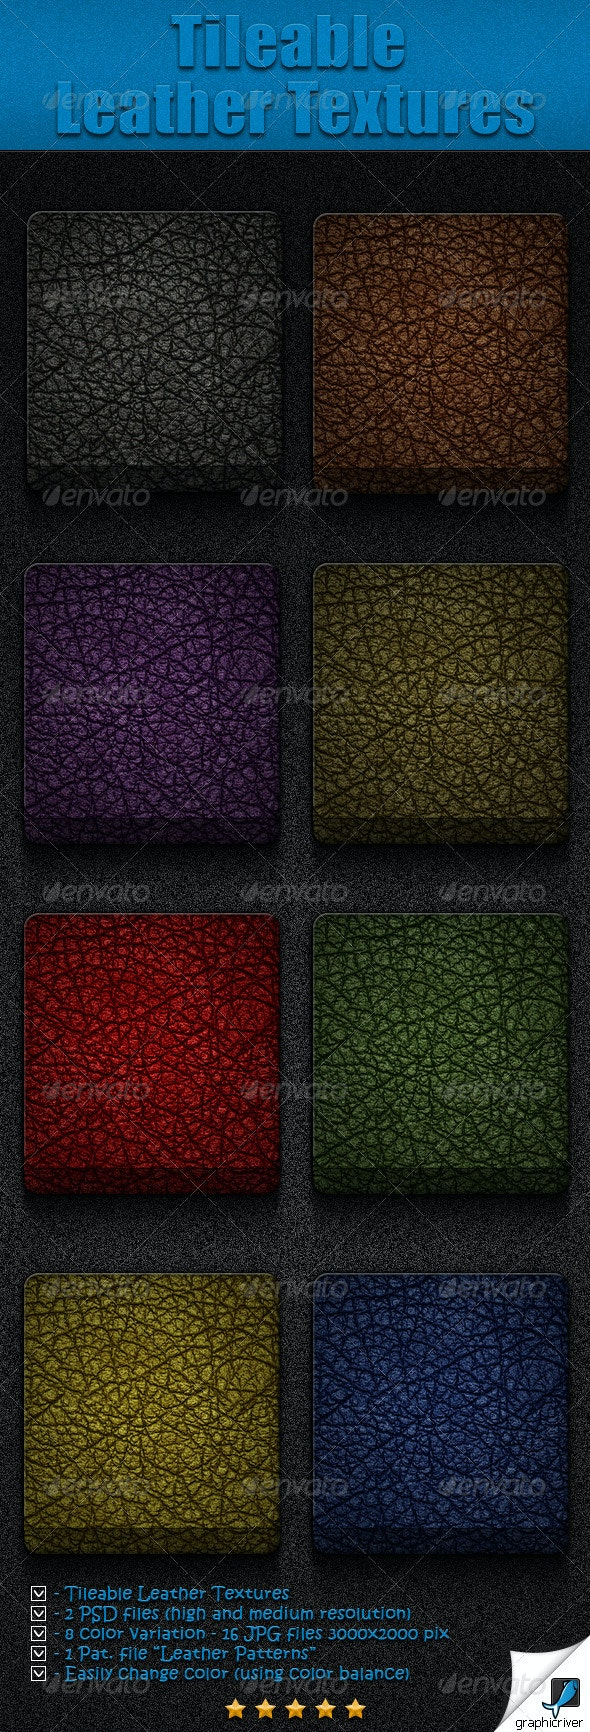 Tileable Leather Textures - Textures